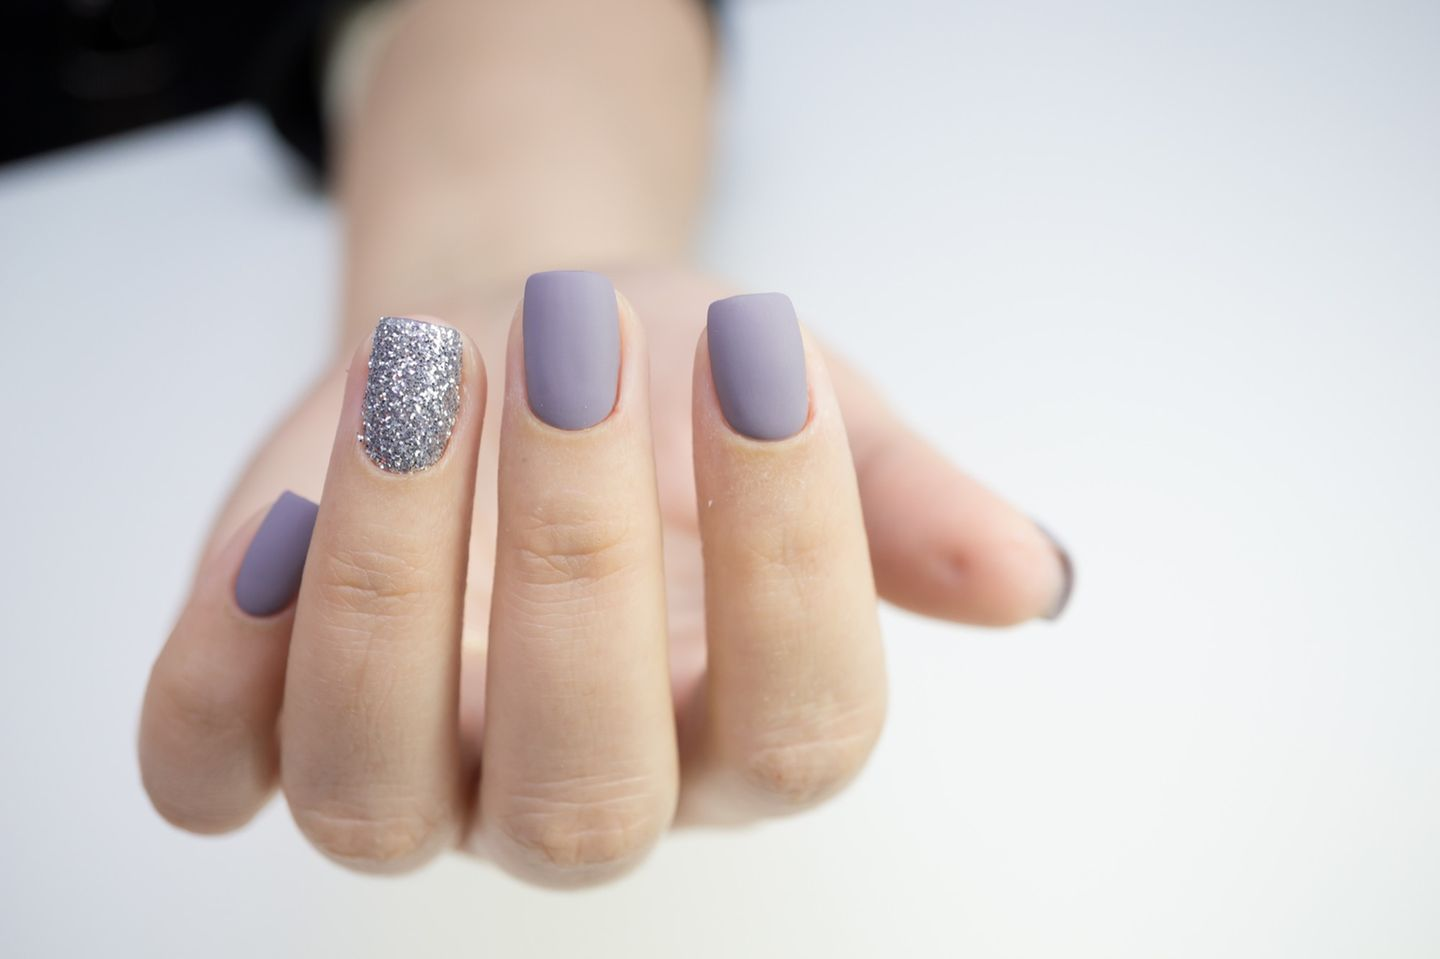 Shellac - nail polish that lasts forever?